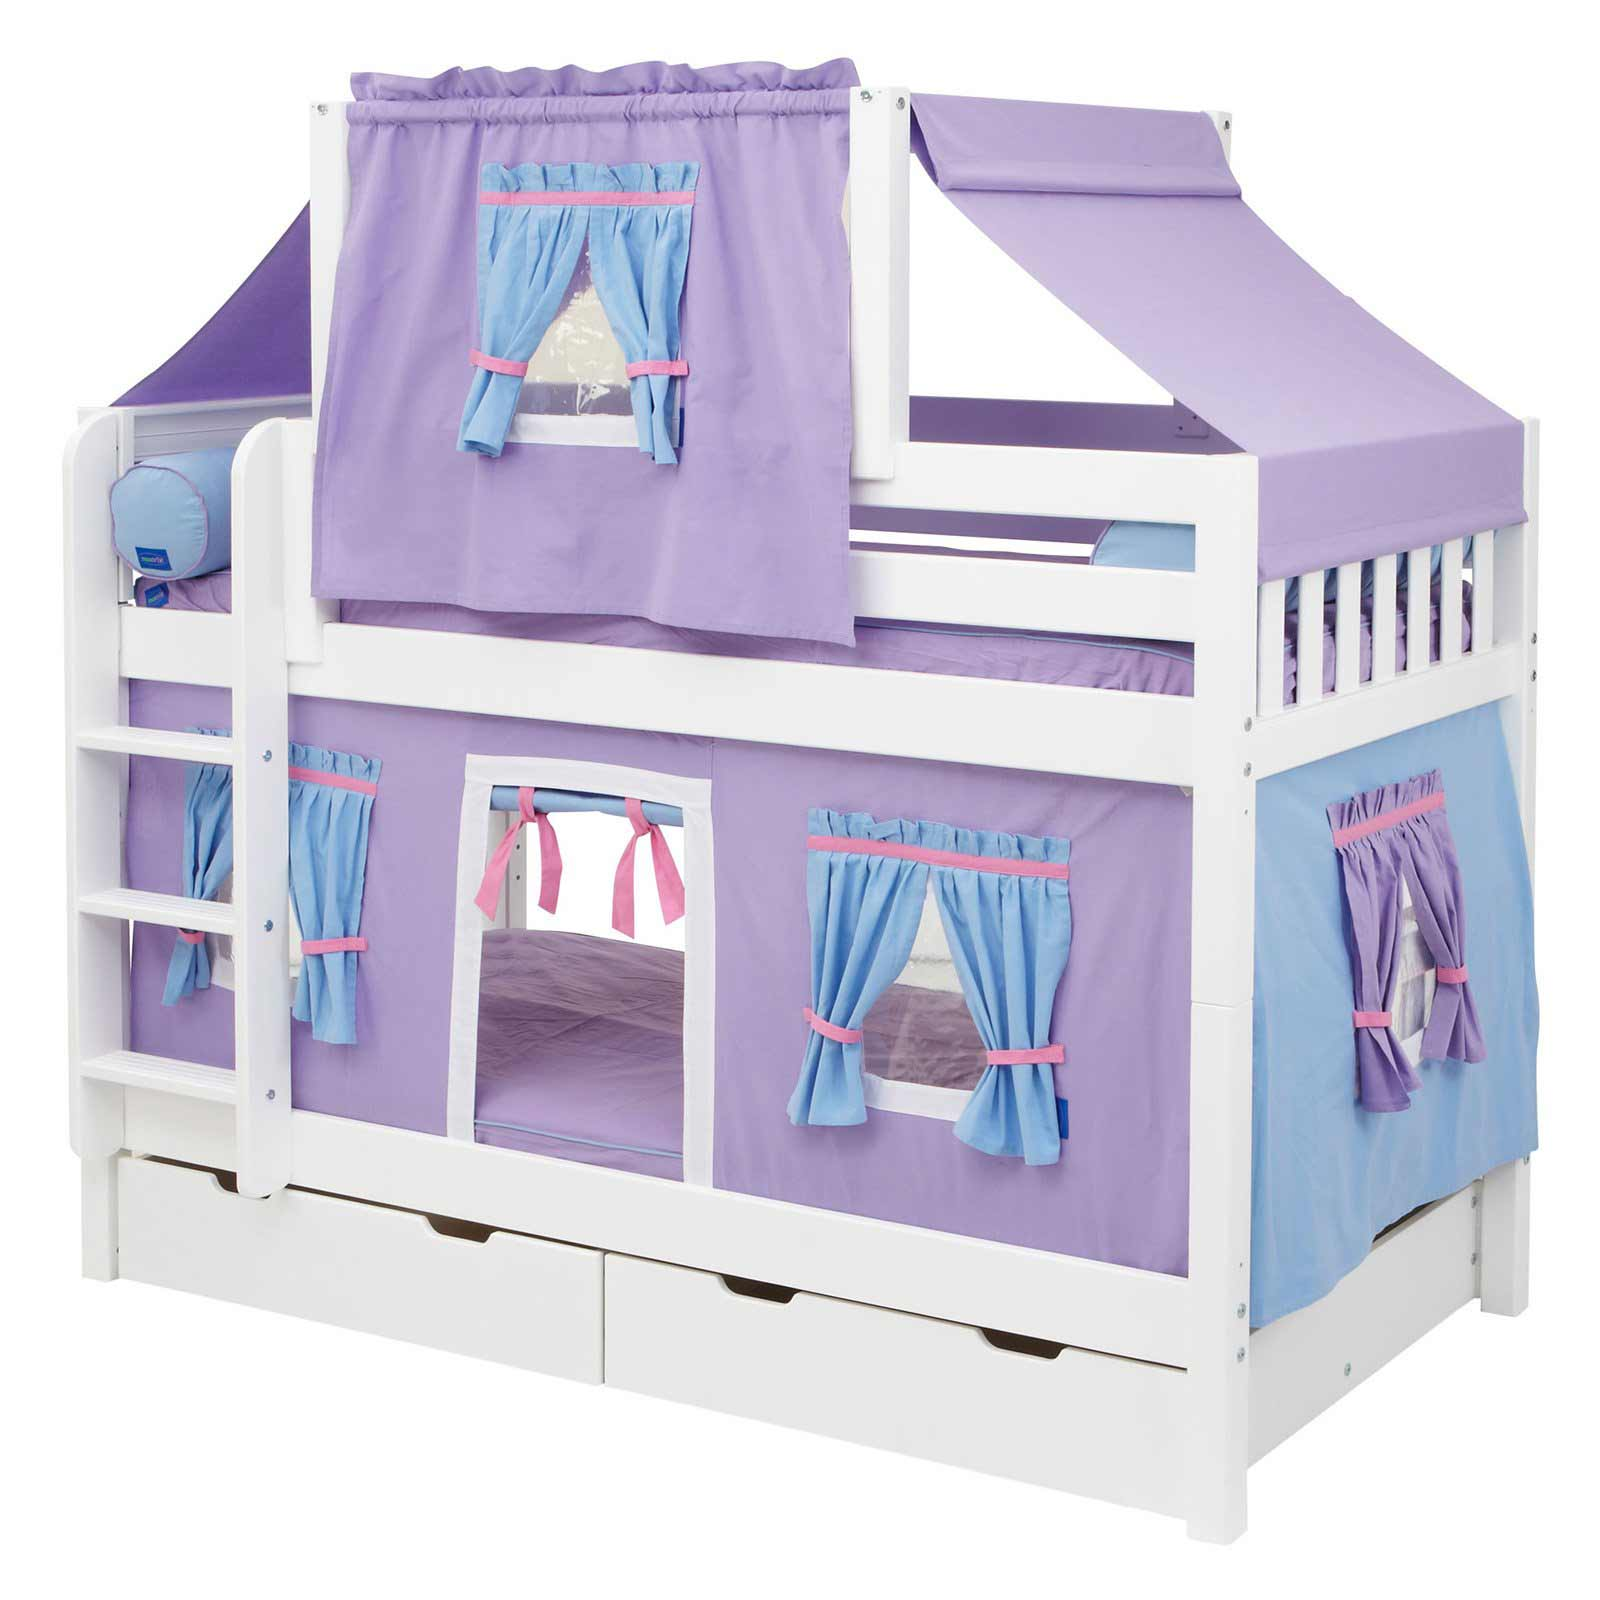 Bunk Bed Canopy 10 Awesome Bunk Beds Decoholic  sc 1 st  Diydesign : bunk bed canopy tent - memphite.com